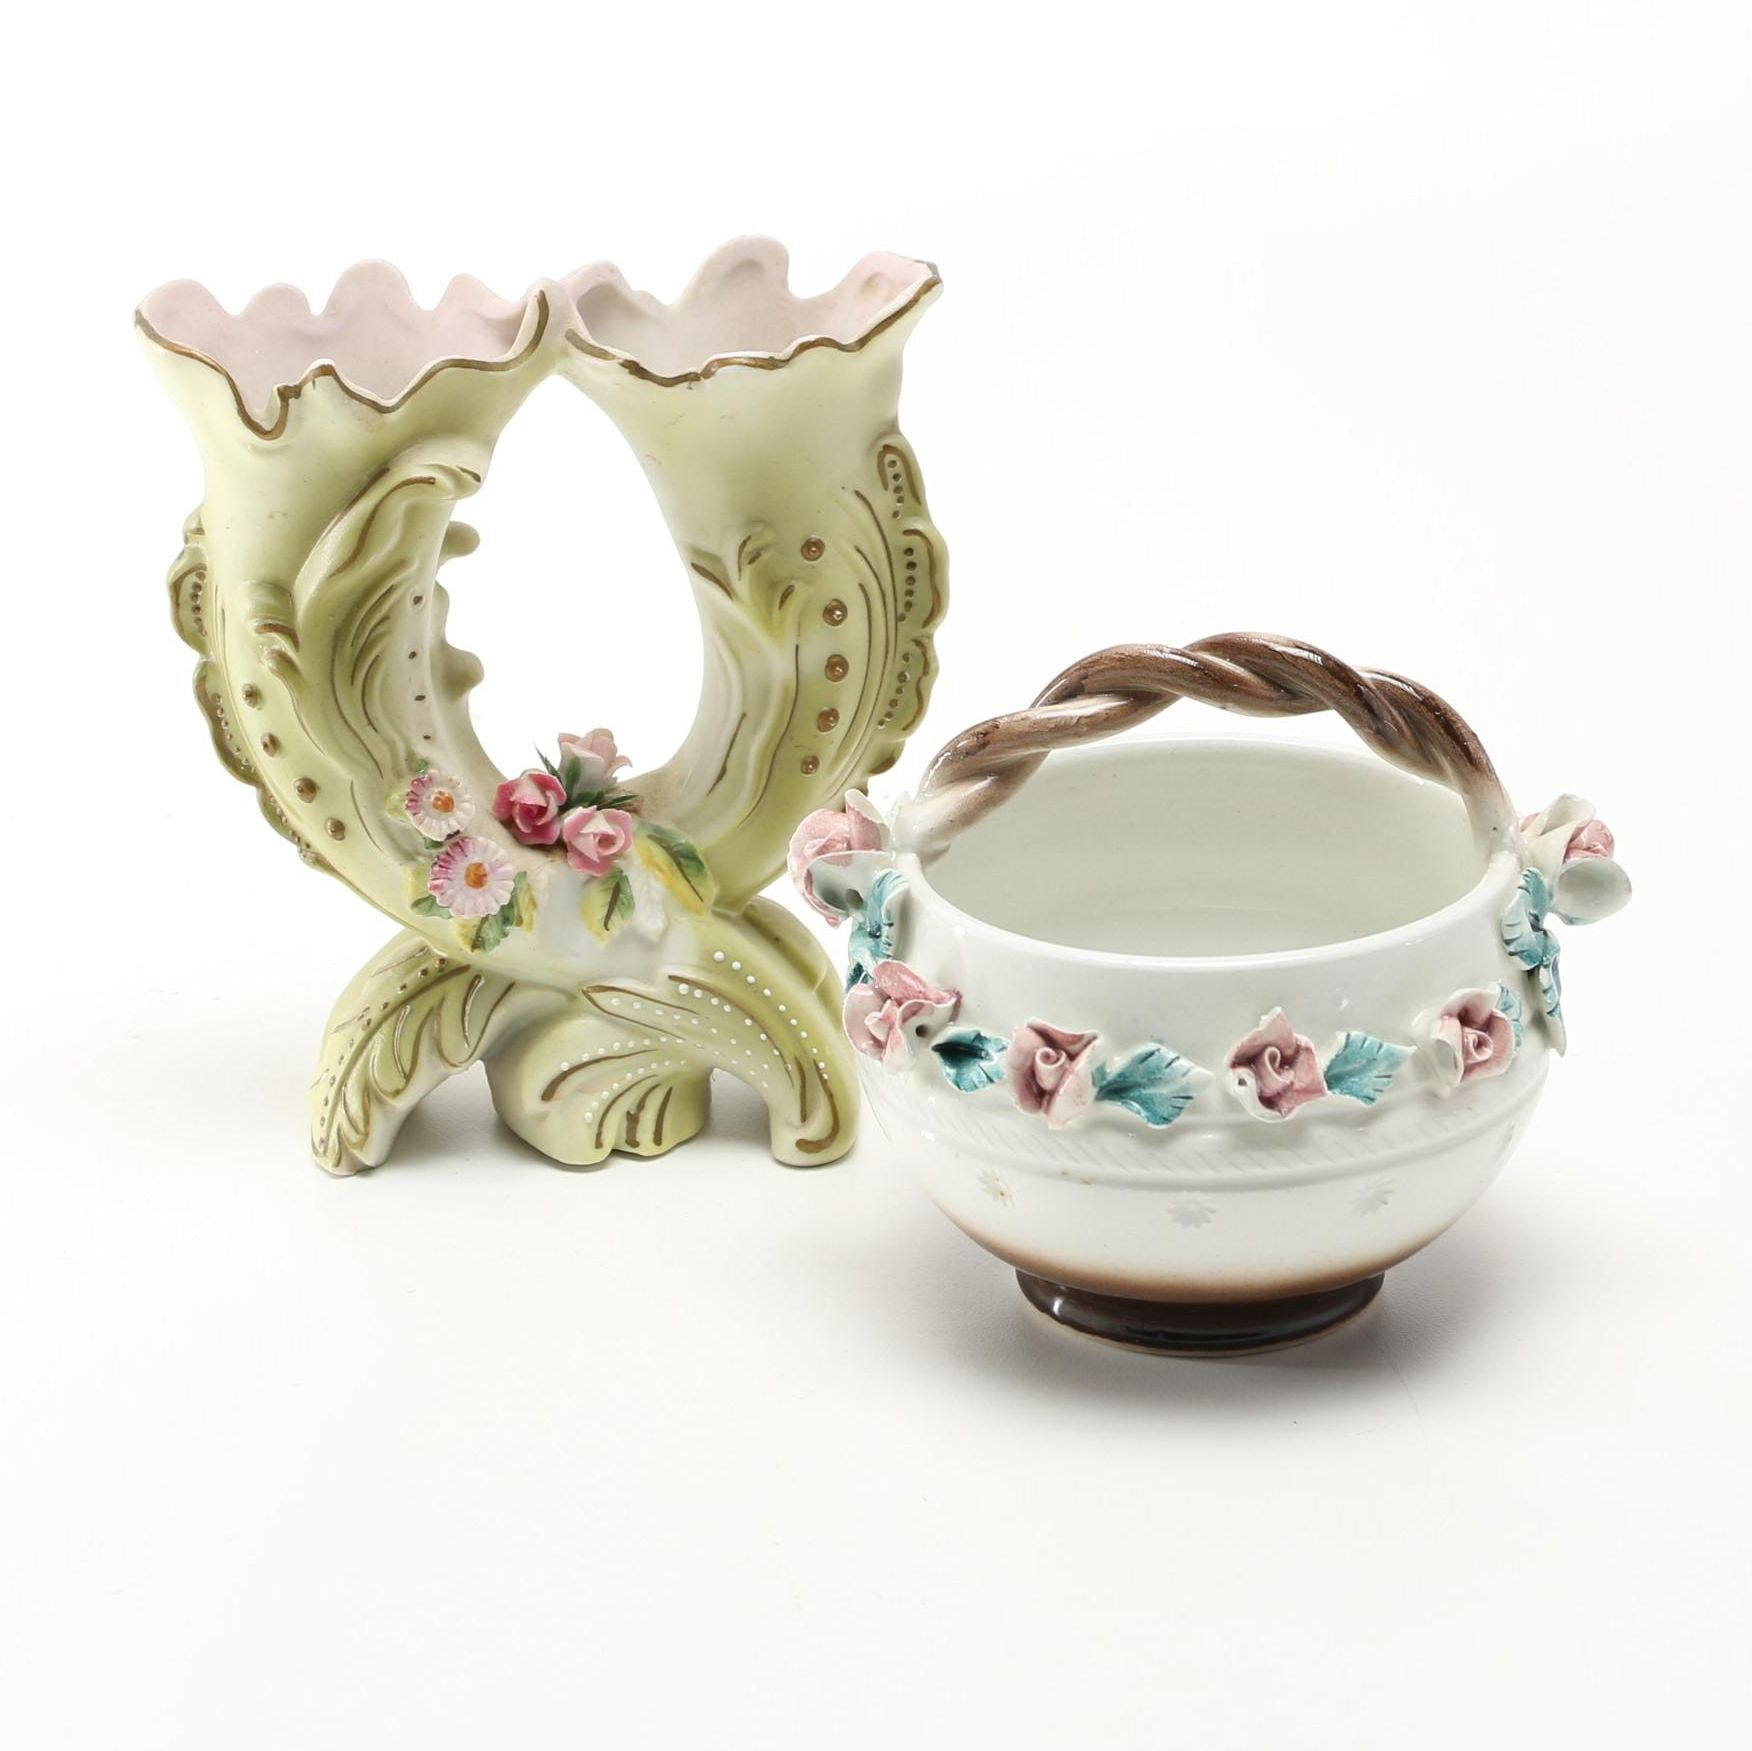 Floral Decorated Ceramics Including Capodimonte